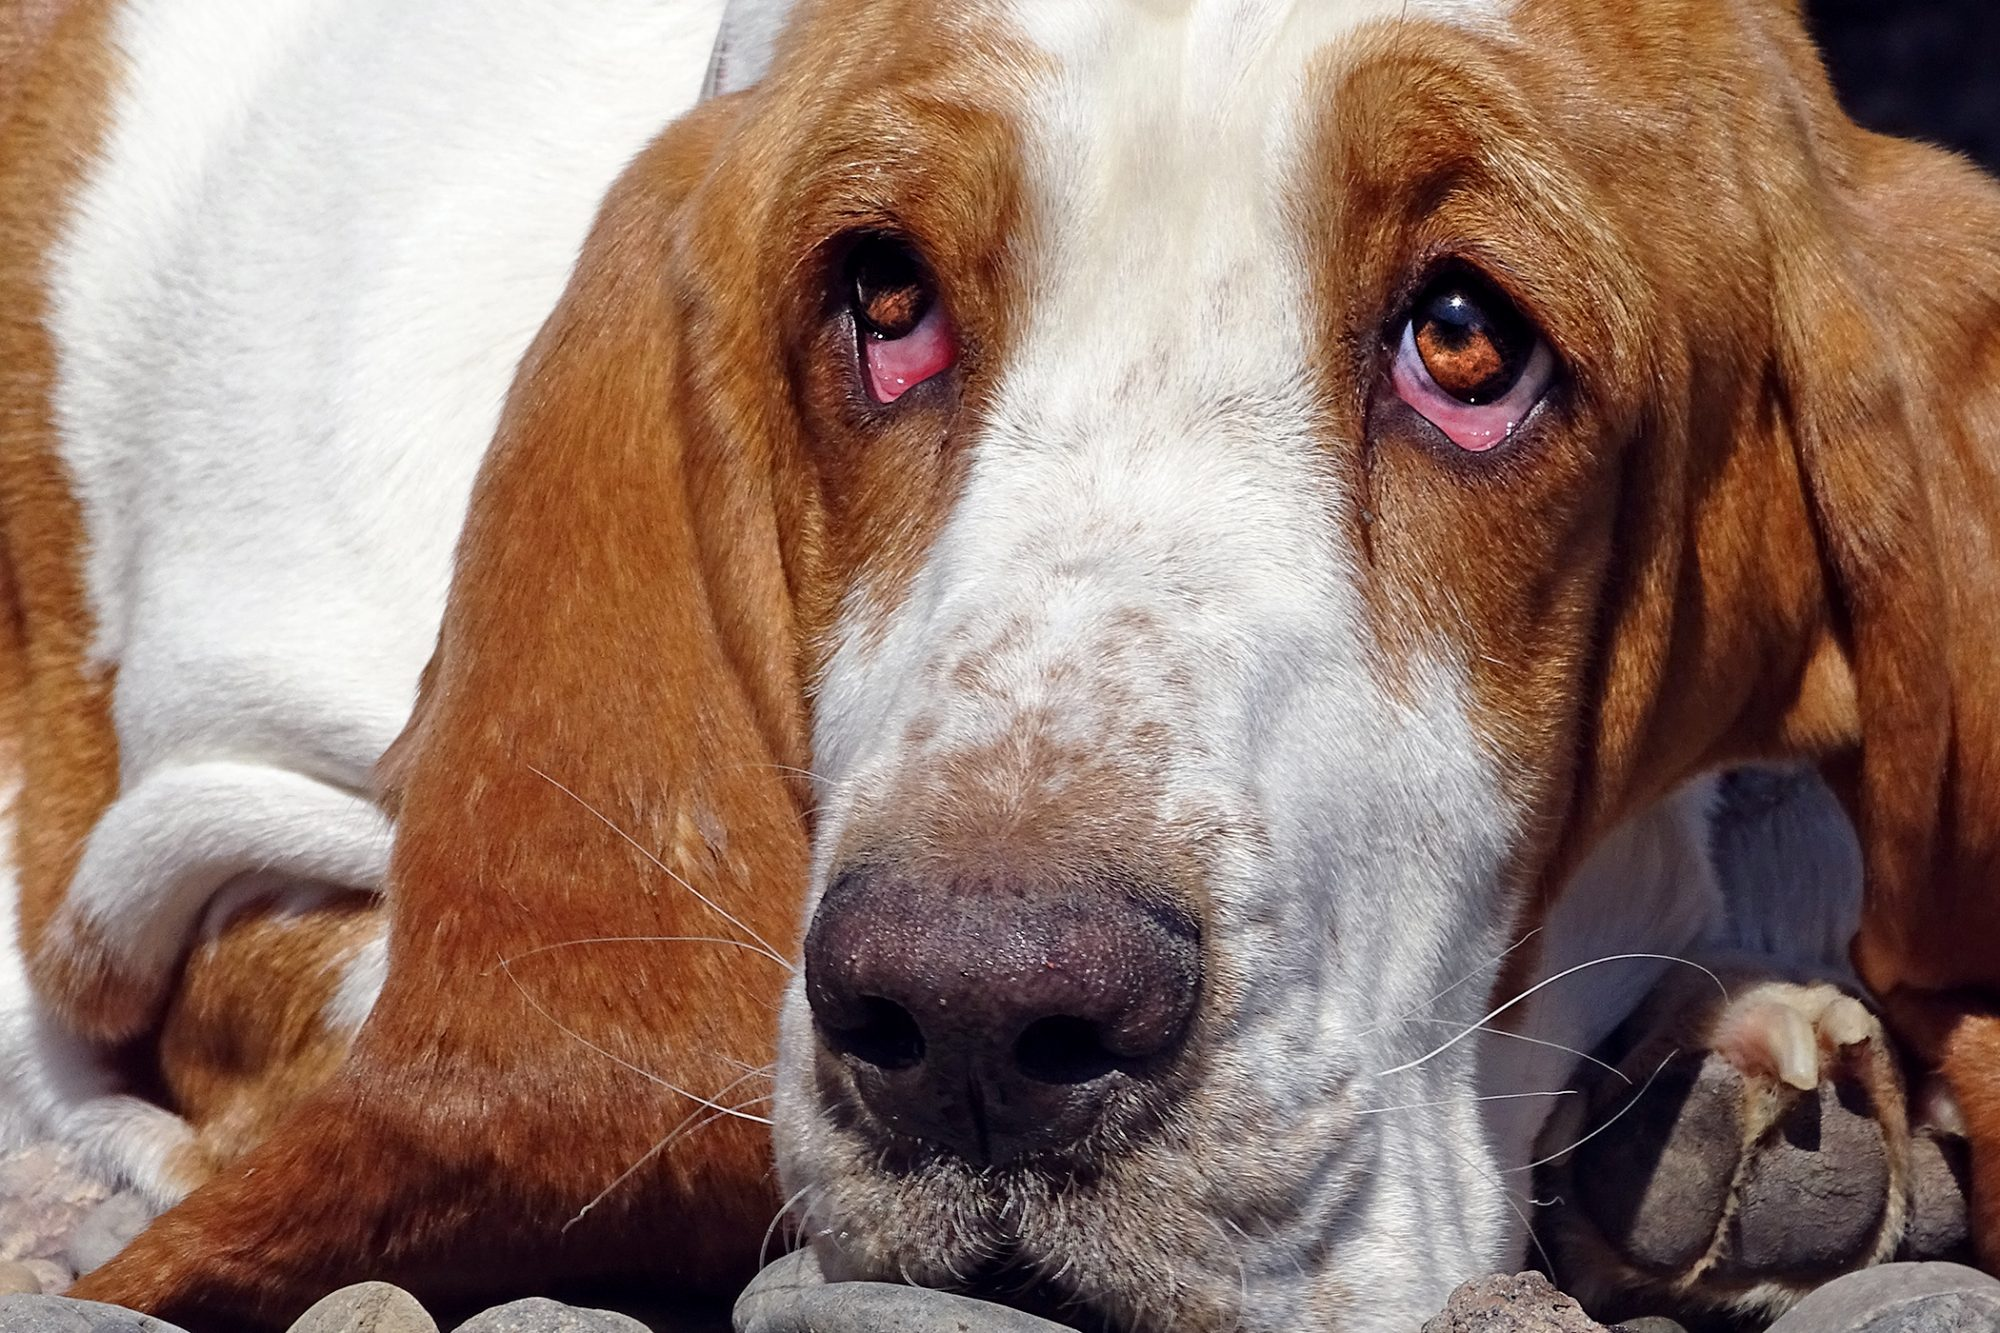 closeup of a basset hound's droopy eyes with ectropion